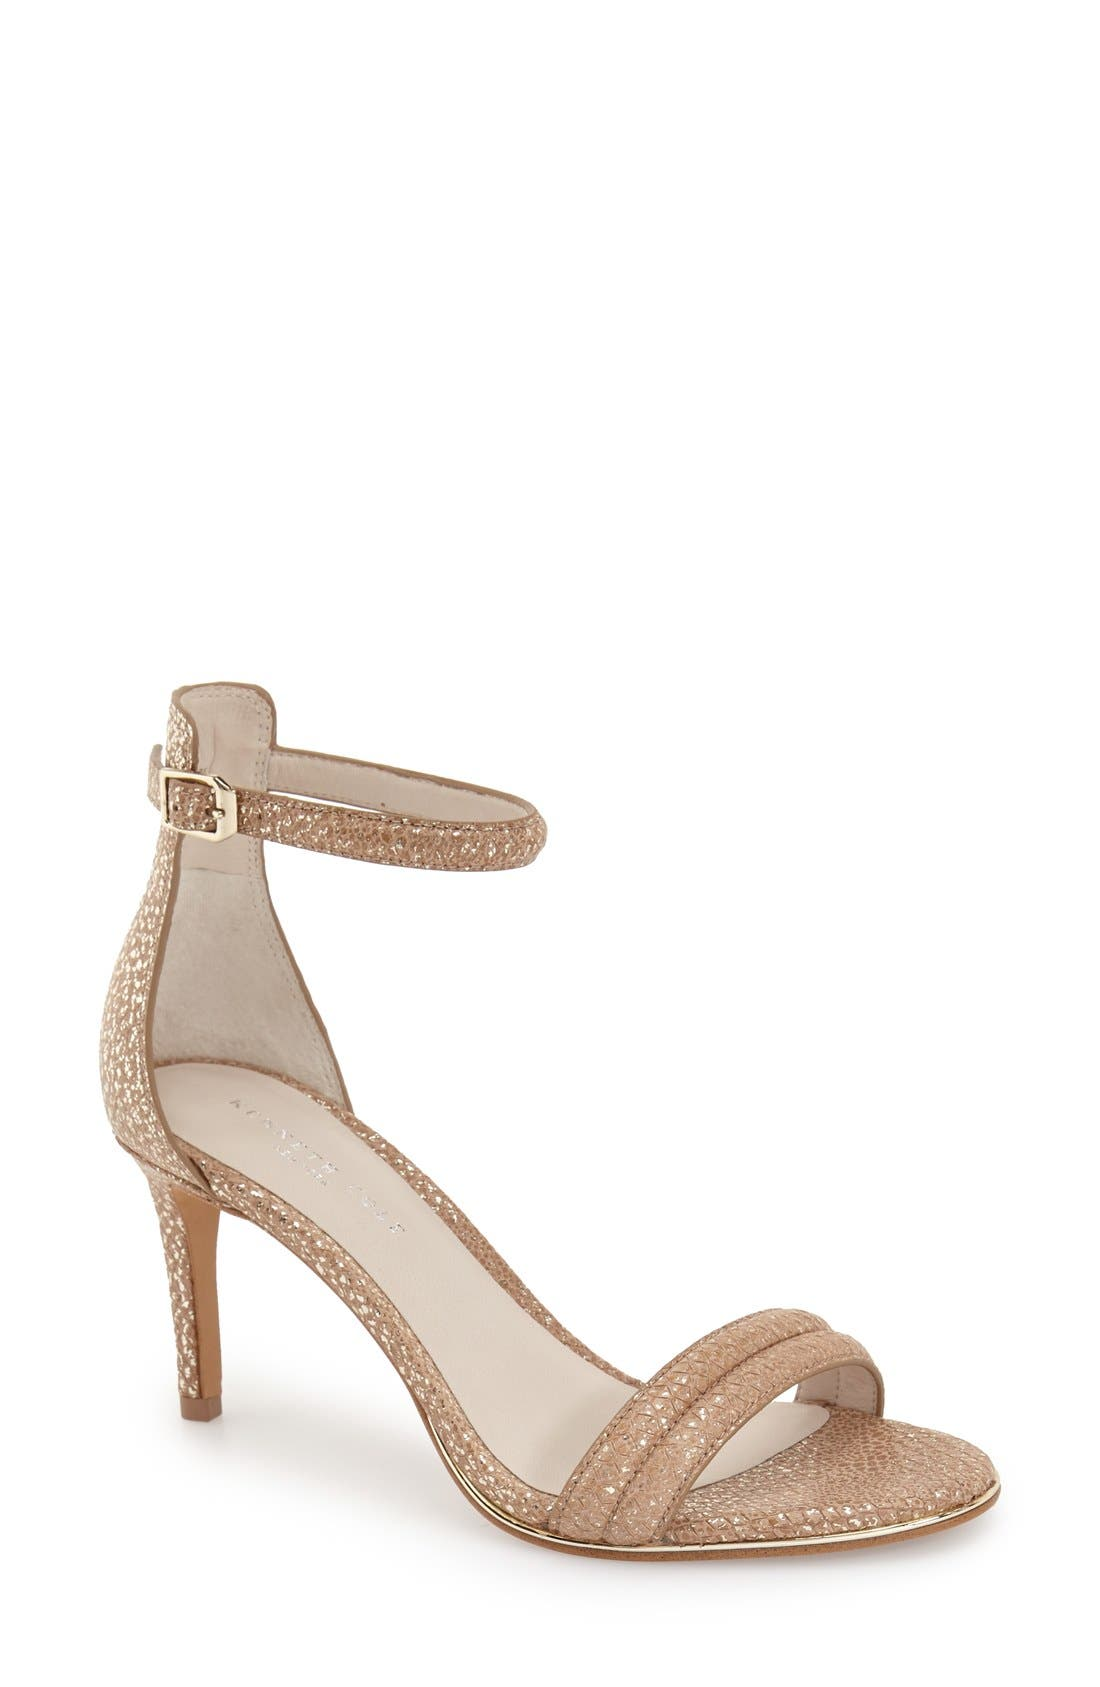 KENNETH COLE NEW YORK Mallory Ankle Strap Sandal